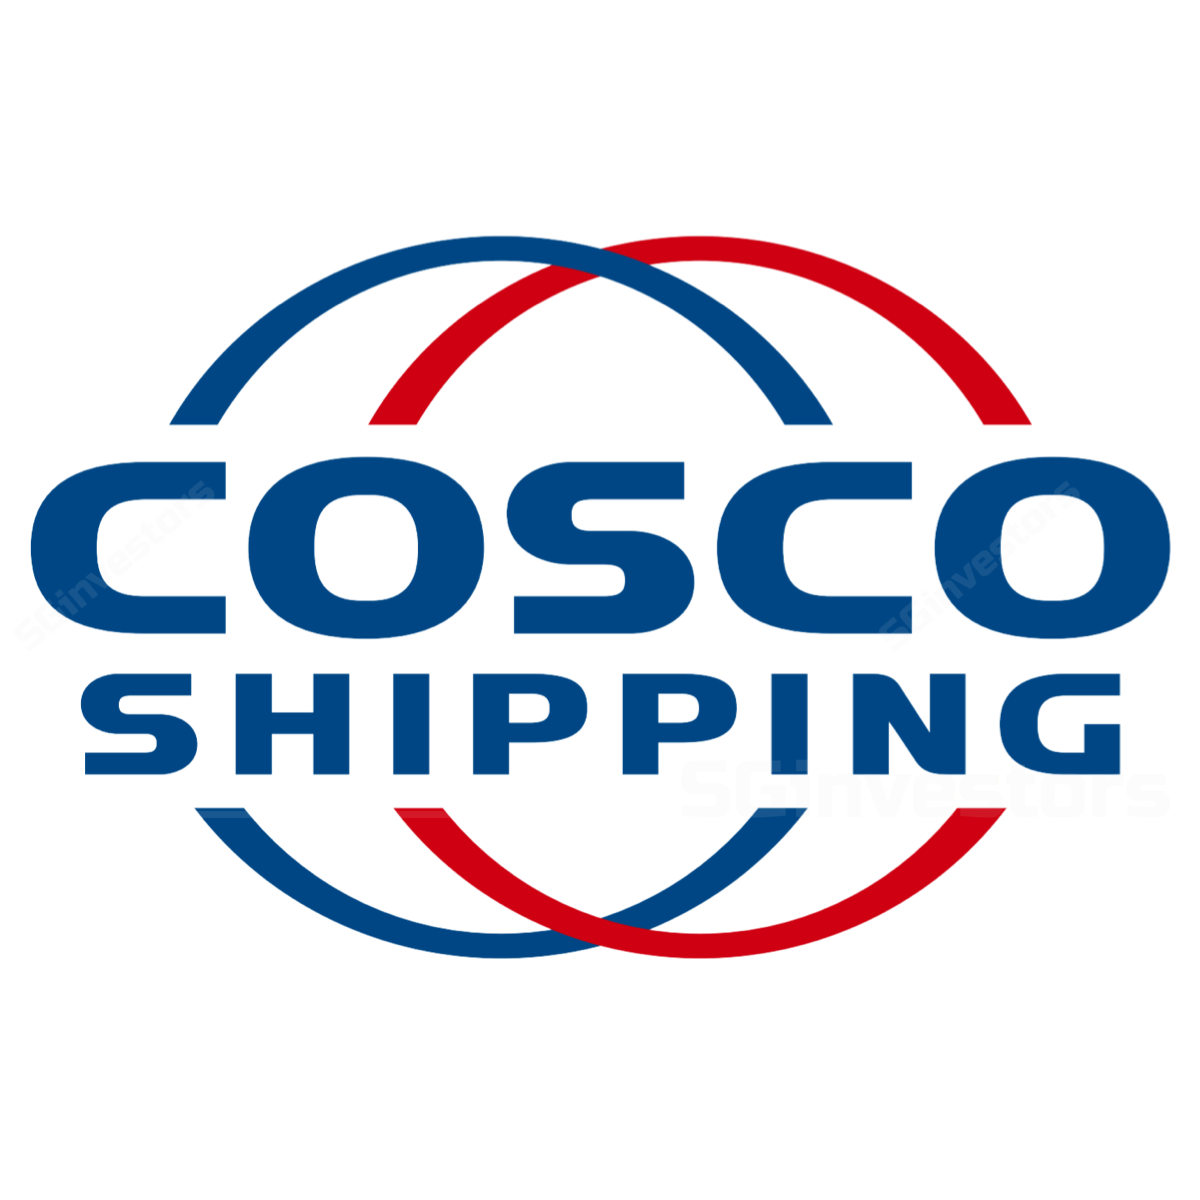 Cosco Shipping Int'l (Spore) - DBS Vickers 2017-11-06: Making Foray Into Logistic Business